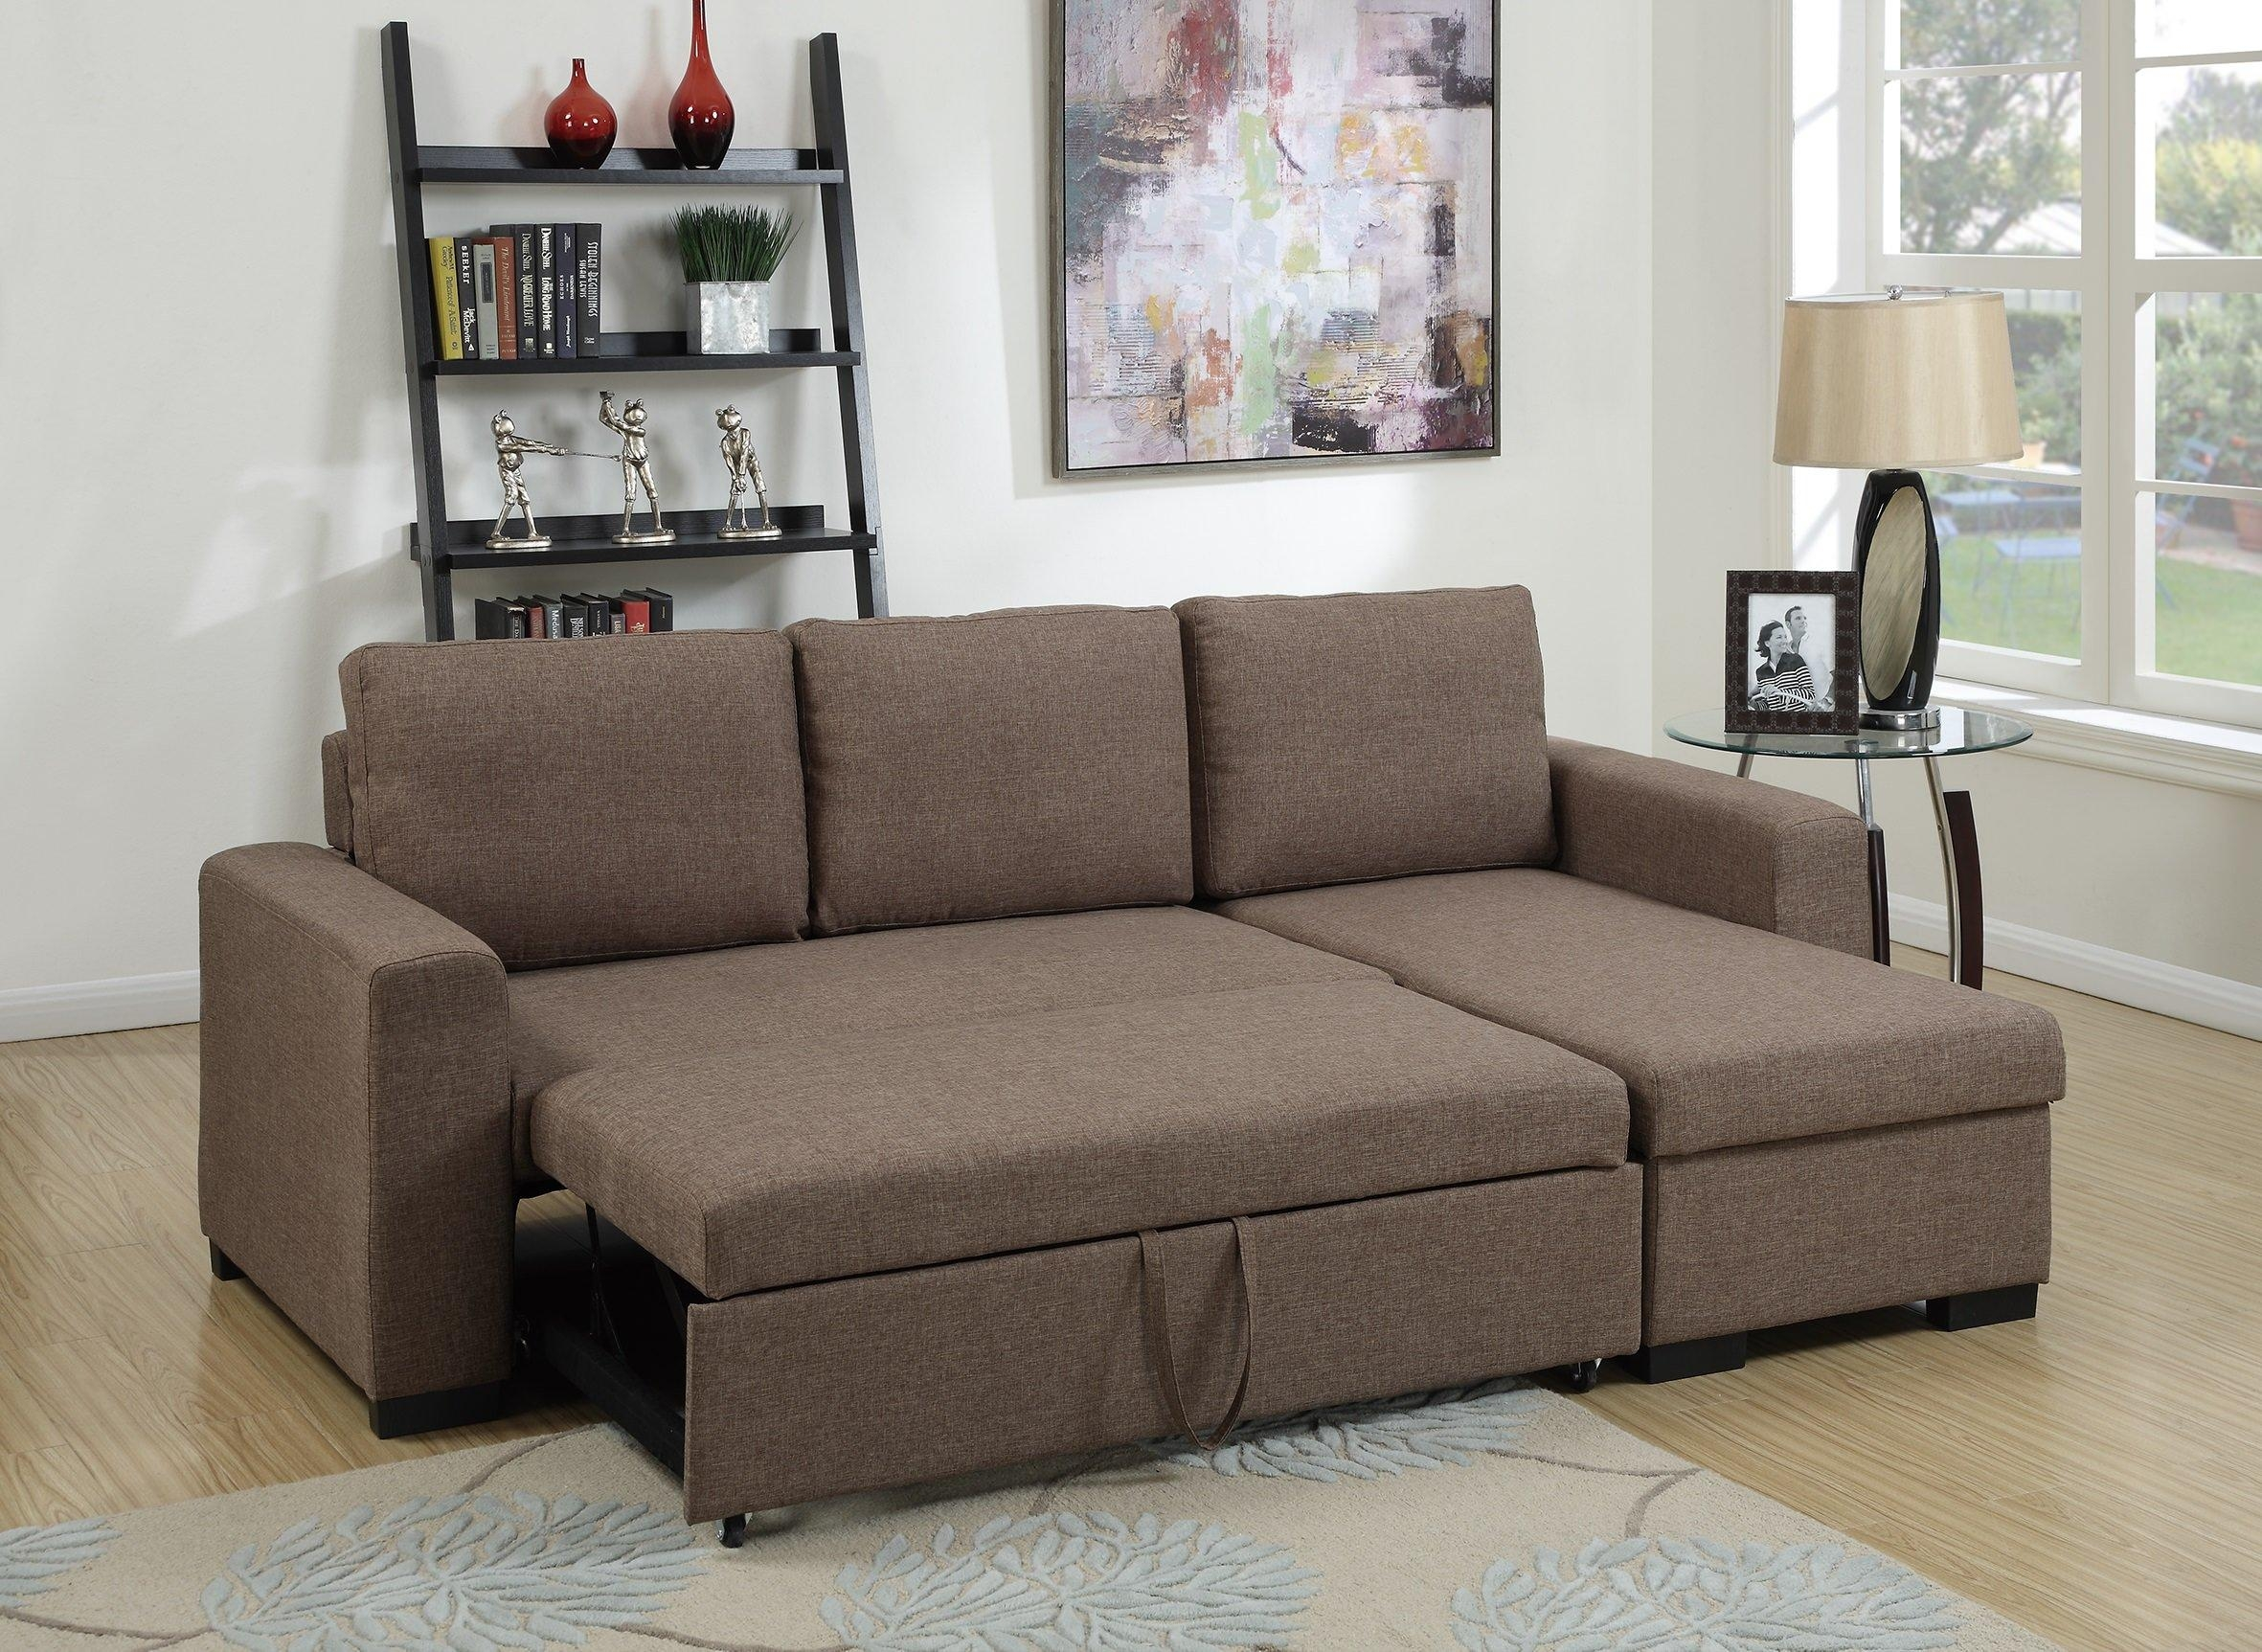 F6932 Light Coffee Convertible Sectional Sofapoundex Intended For Convertible Sectional Sofas (Image 6 of 15)